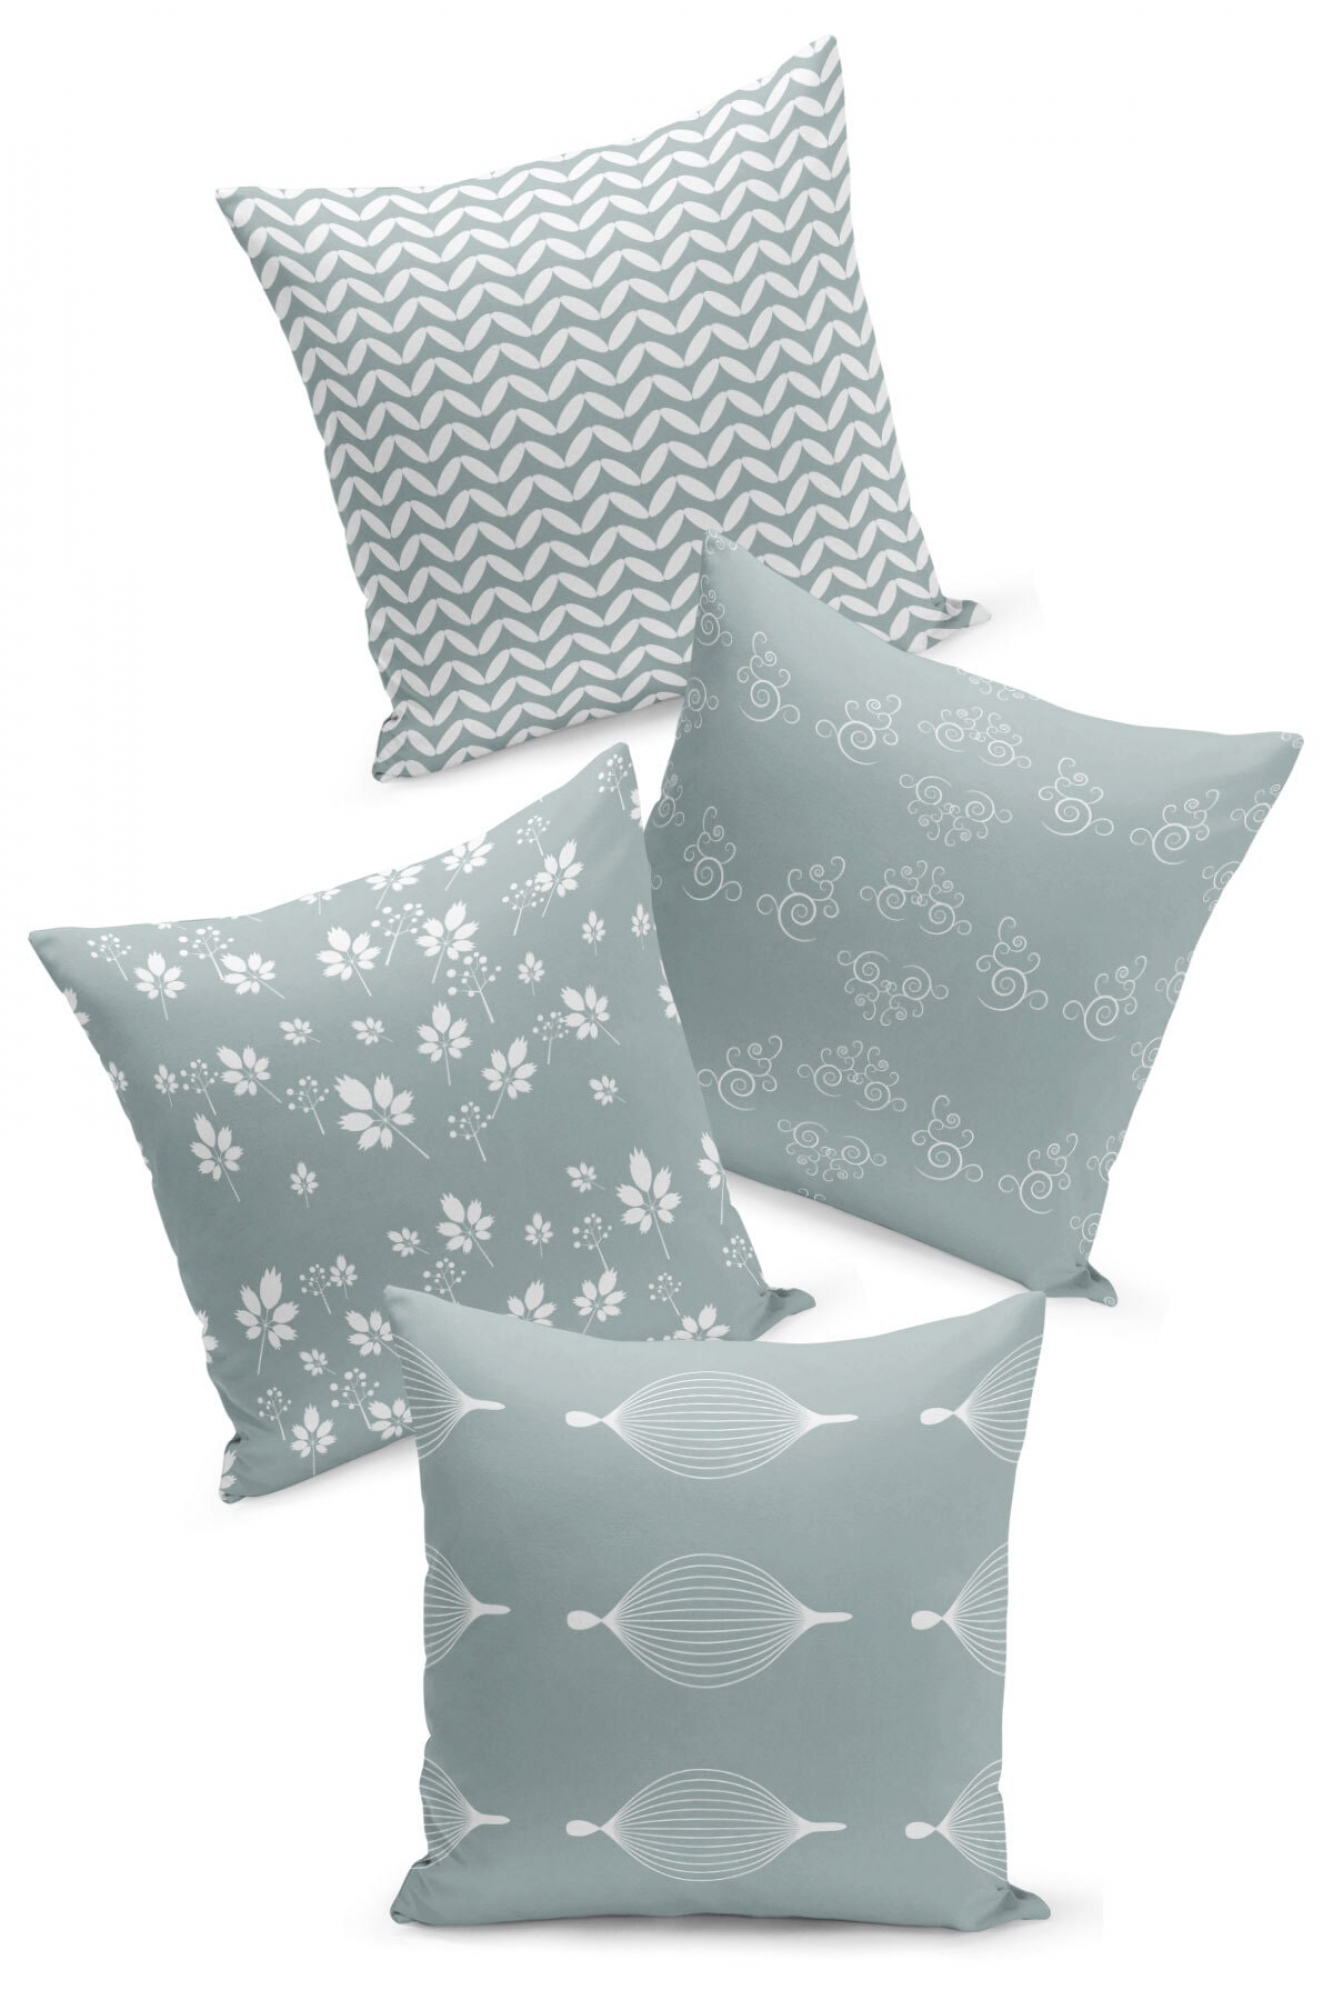 Pillowcases - Set of 4 Designated